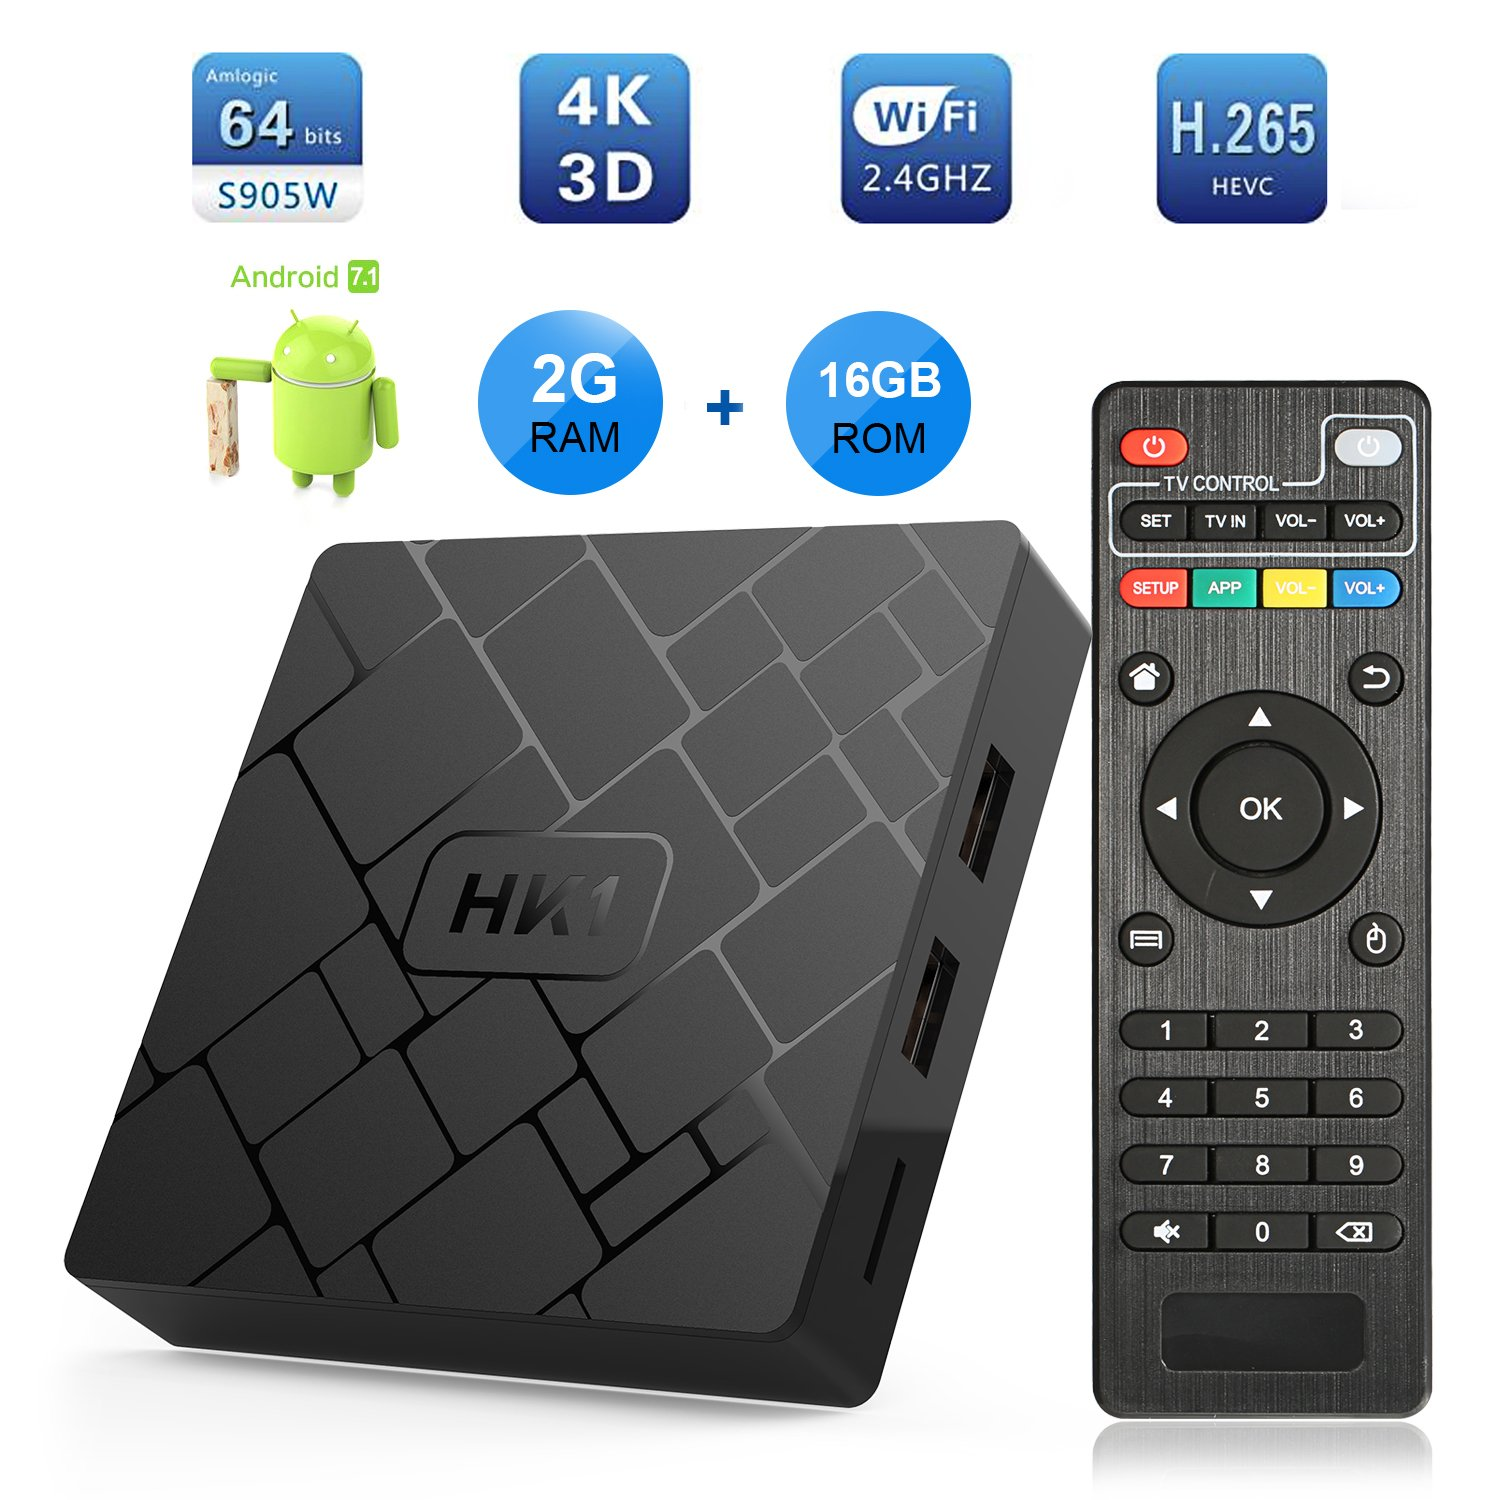 Android 7.1 TV Box - LIVEBOX HK1 2018 Version Android TV Box 2GB RAM 16GB ROM Amlogic S905W Quad Core A53 64 Bits,Supporting 4K (60Hz) Full HD/3D/H.265/WiFi 2.4GHz by LIVEBOX